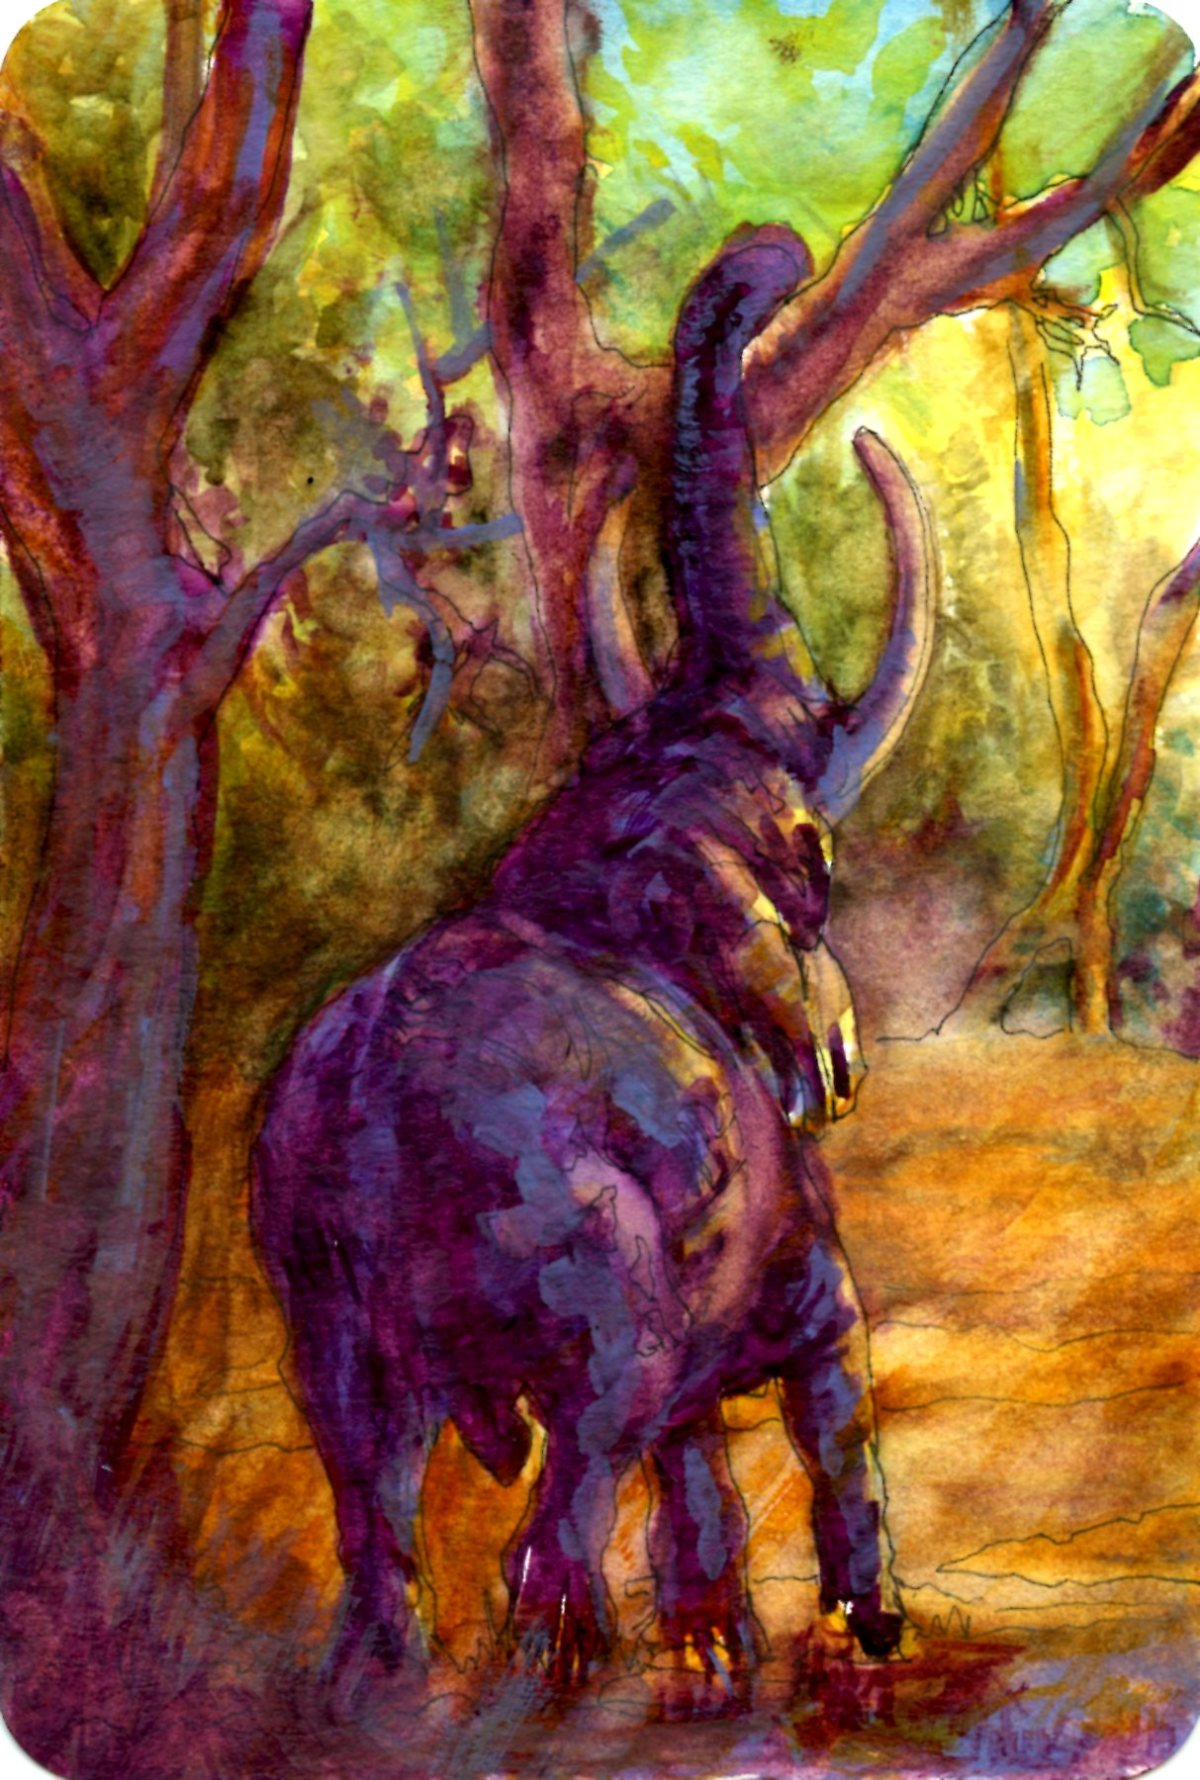 PassionforArt19's Elephant – Postcards for the Lunch Bag